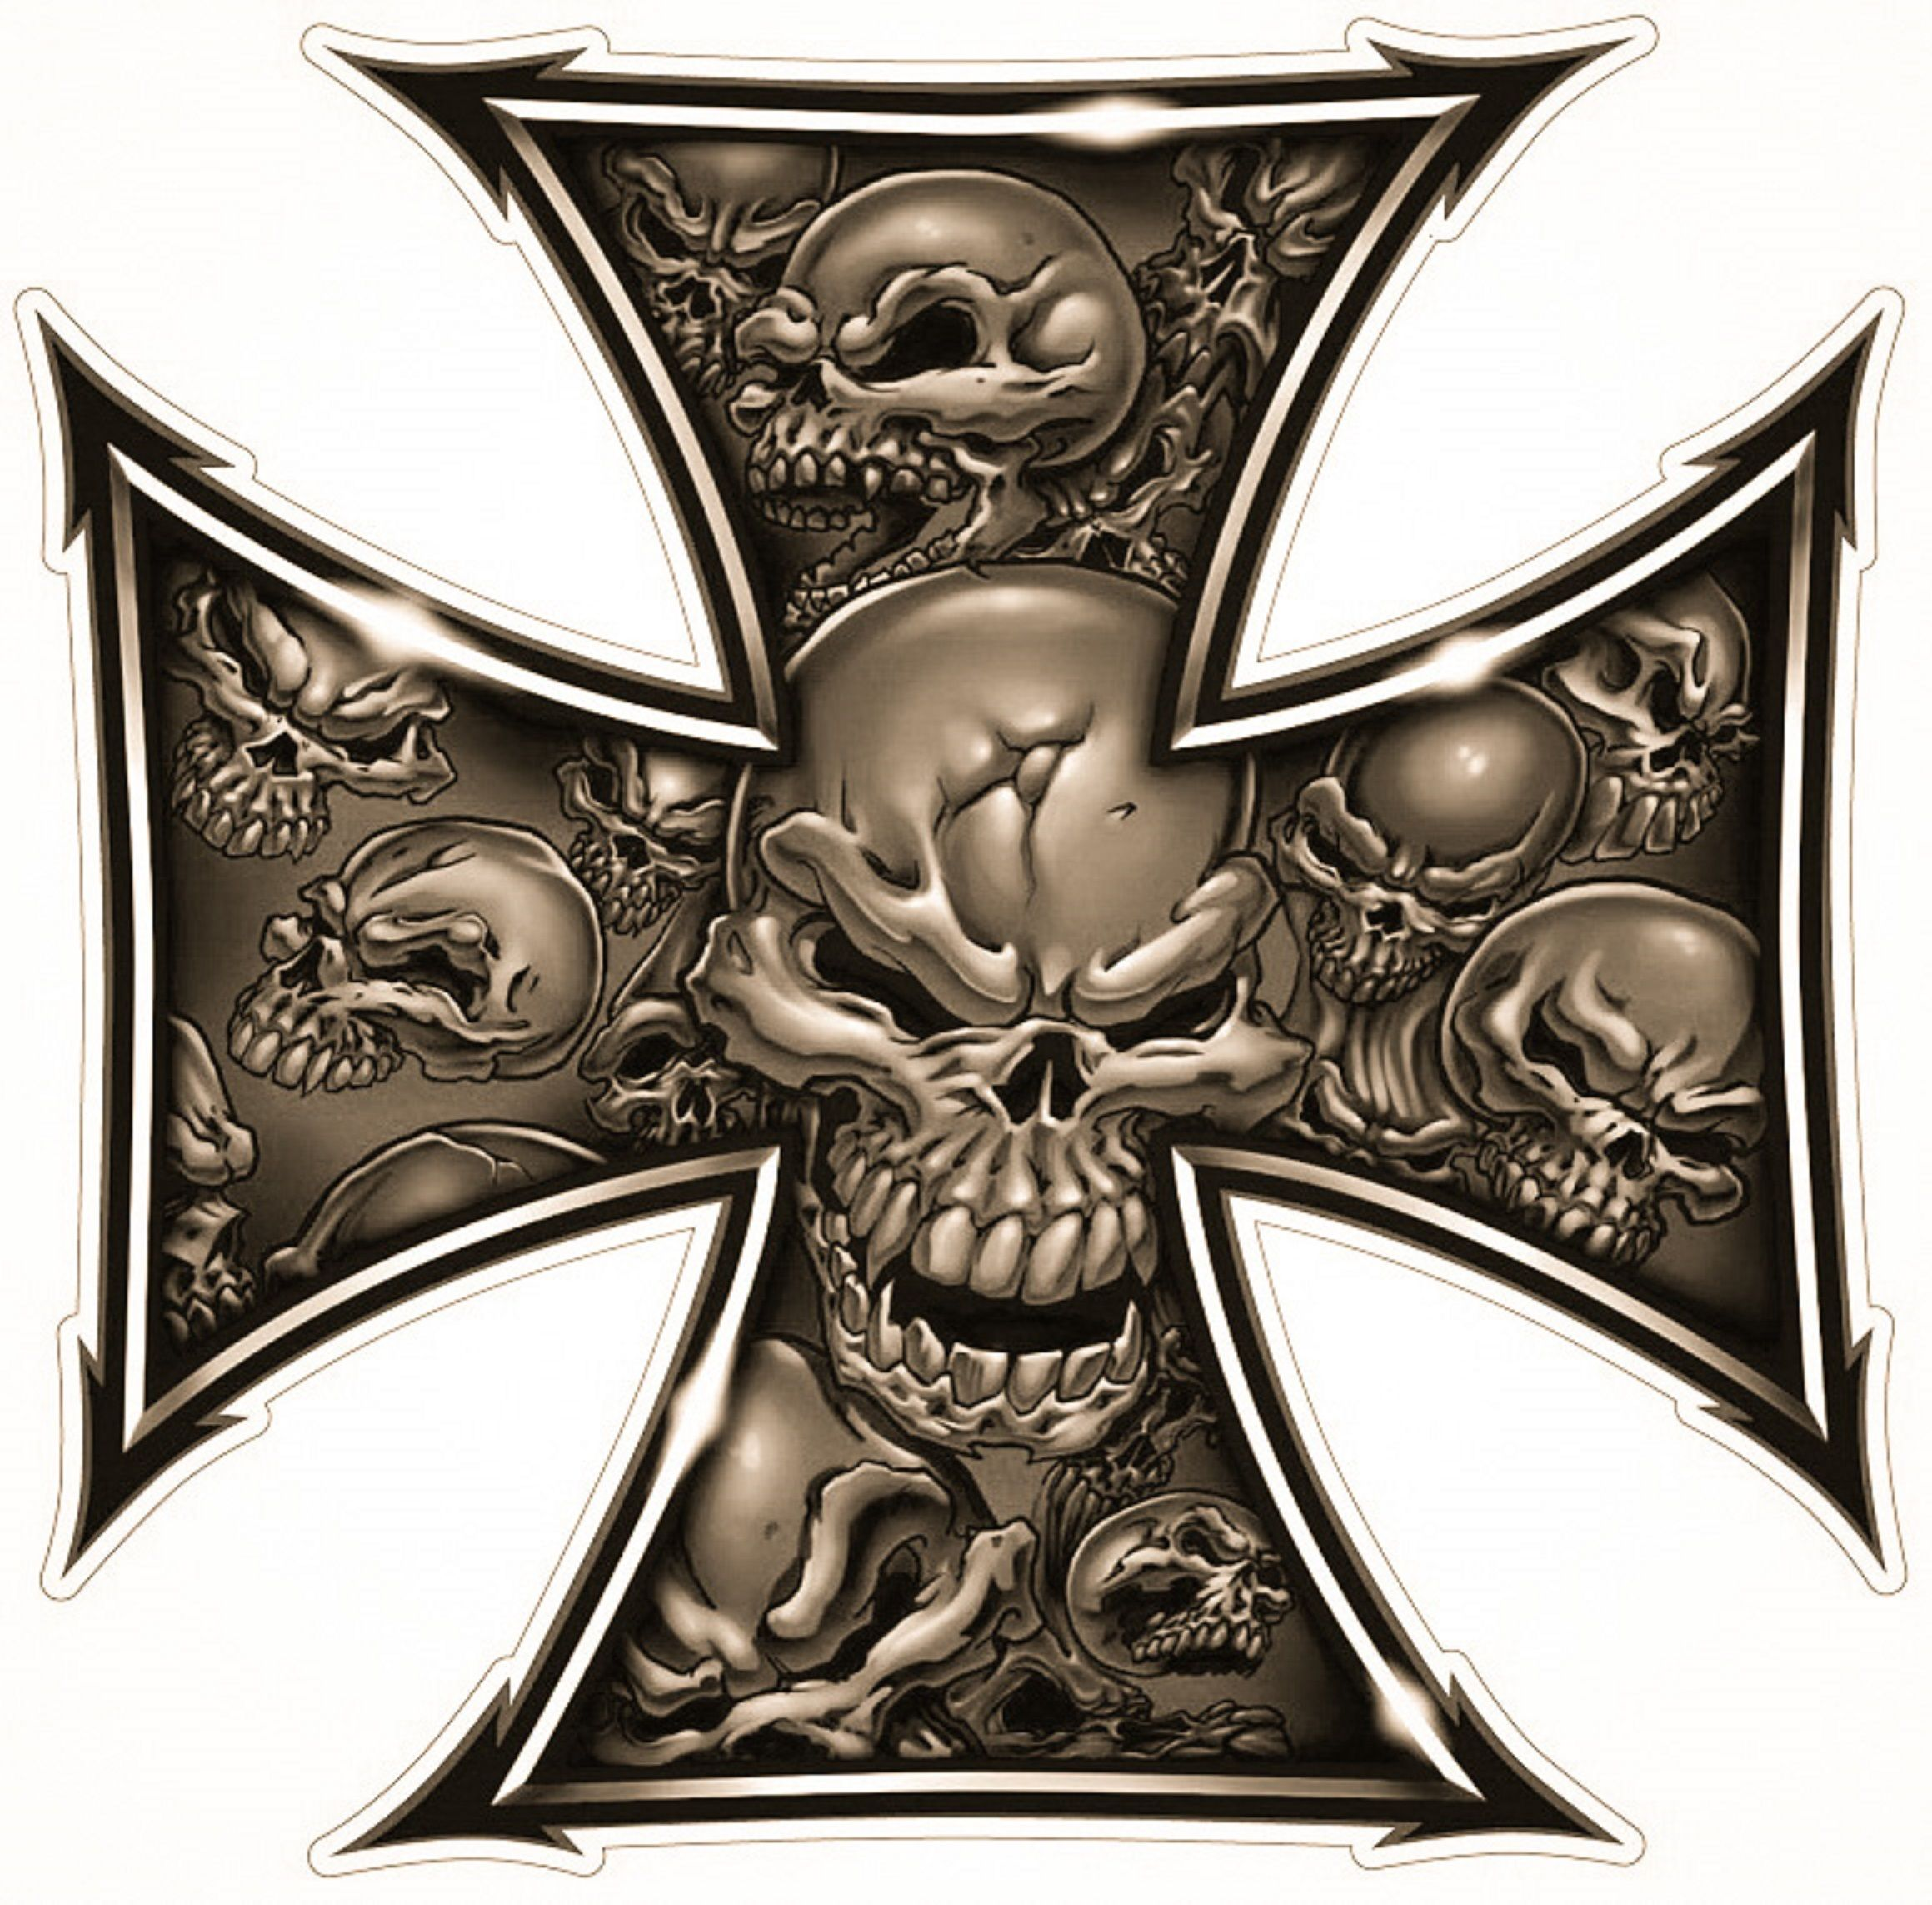 Iron Cross | Tattoos in 2019 | Skull art, Skull tattoos, Skull